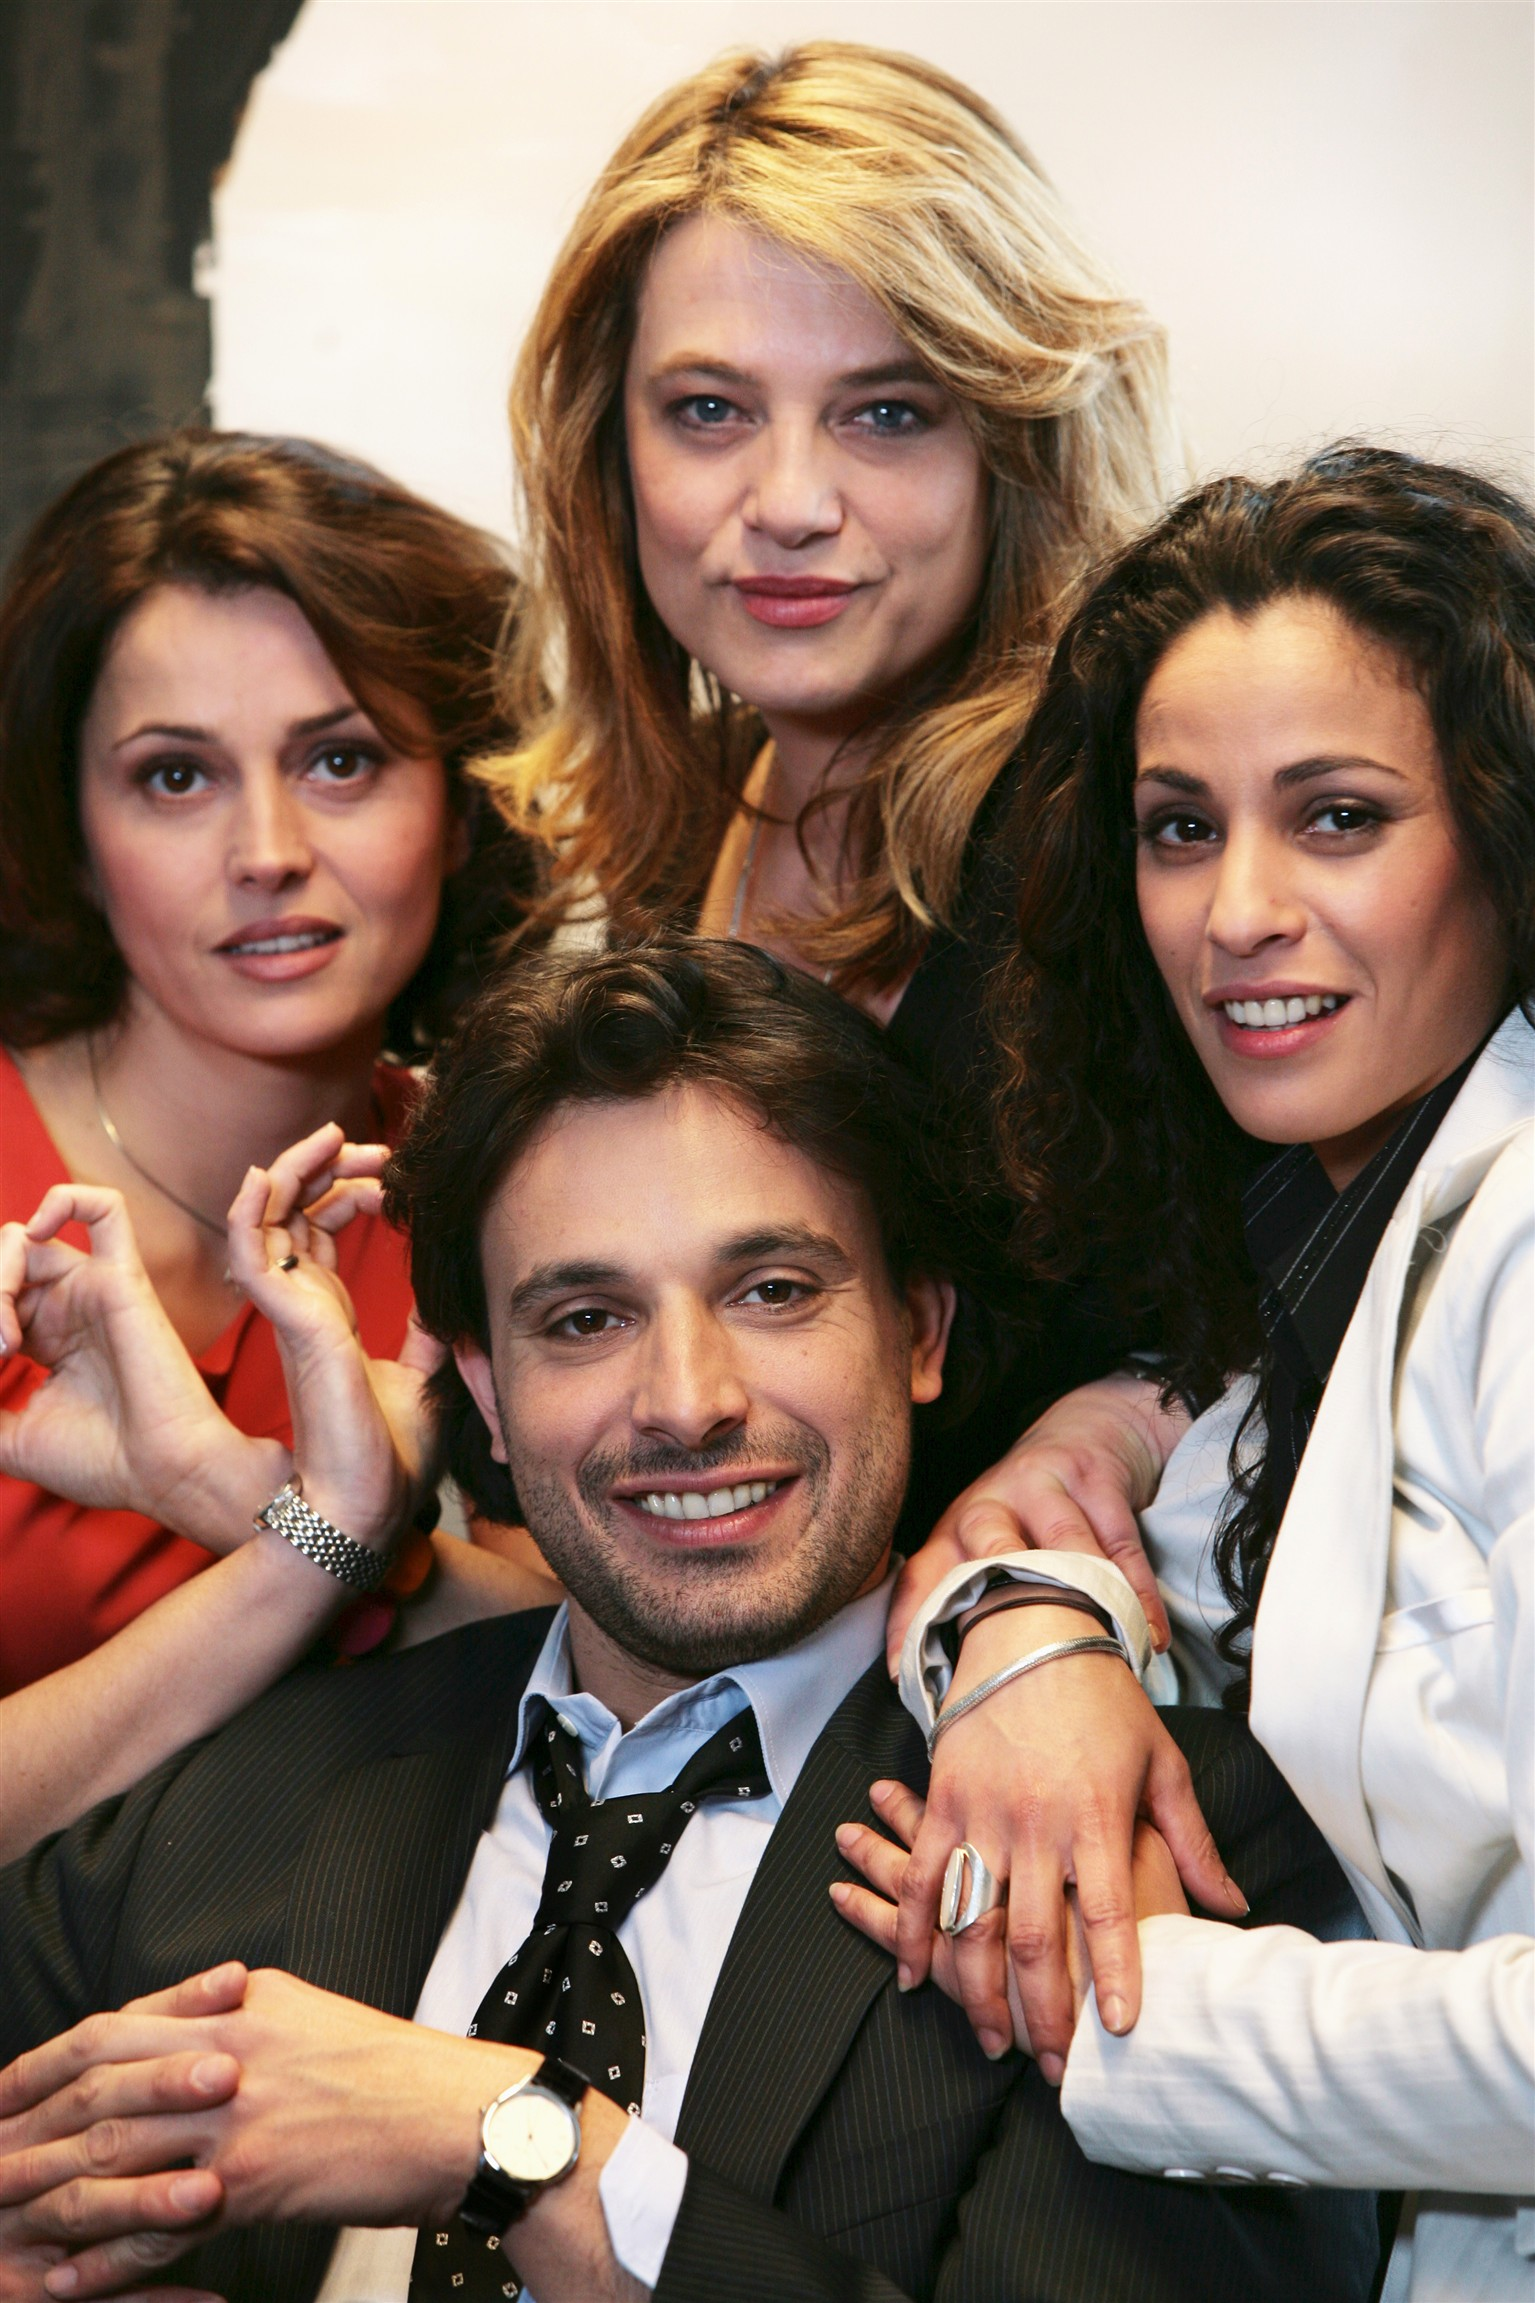 Anne Charrier, Eva Mazauric, Bruno Salomone, and Samira Lachhab in État de manque (2008)